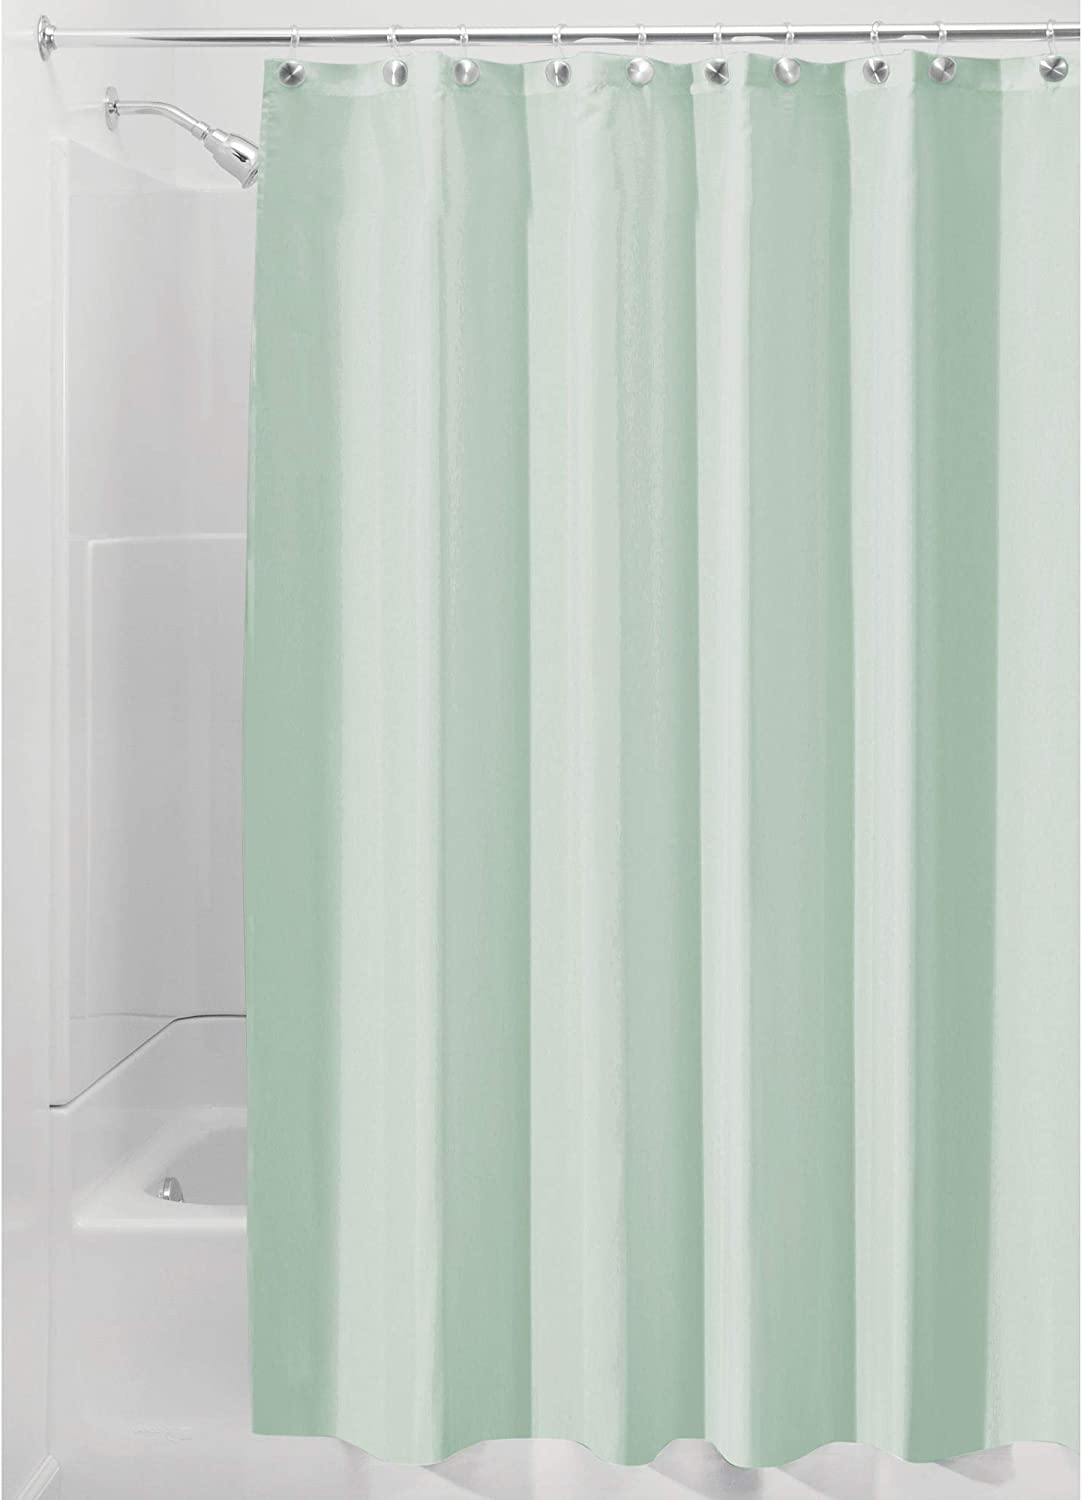 Idesign 14654 Fabric Shower Curtain Mold And Mildew Resistant Water Repellent Bath Liner For Master Bathroom Kid S Bathroom Guest Bathroom 72 X 72 Seafoam Green Home Kitchen